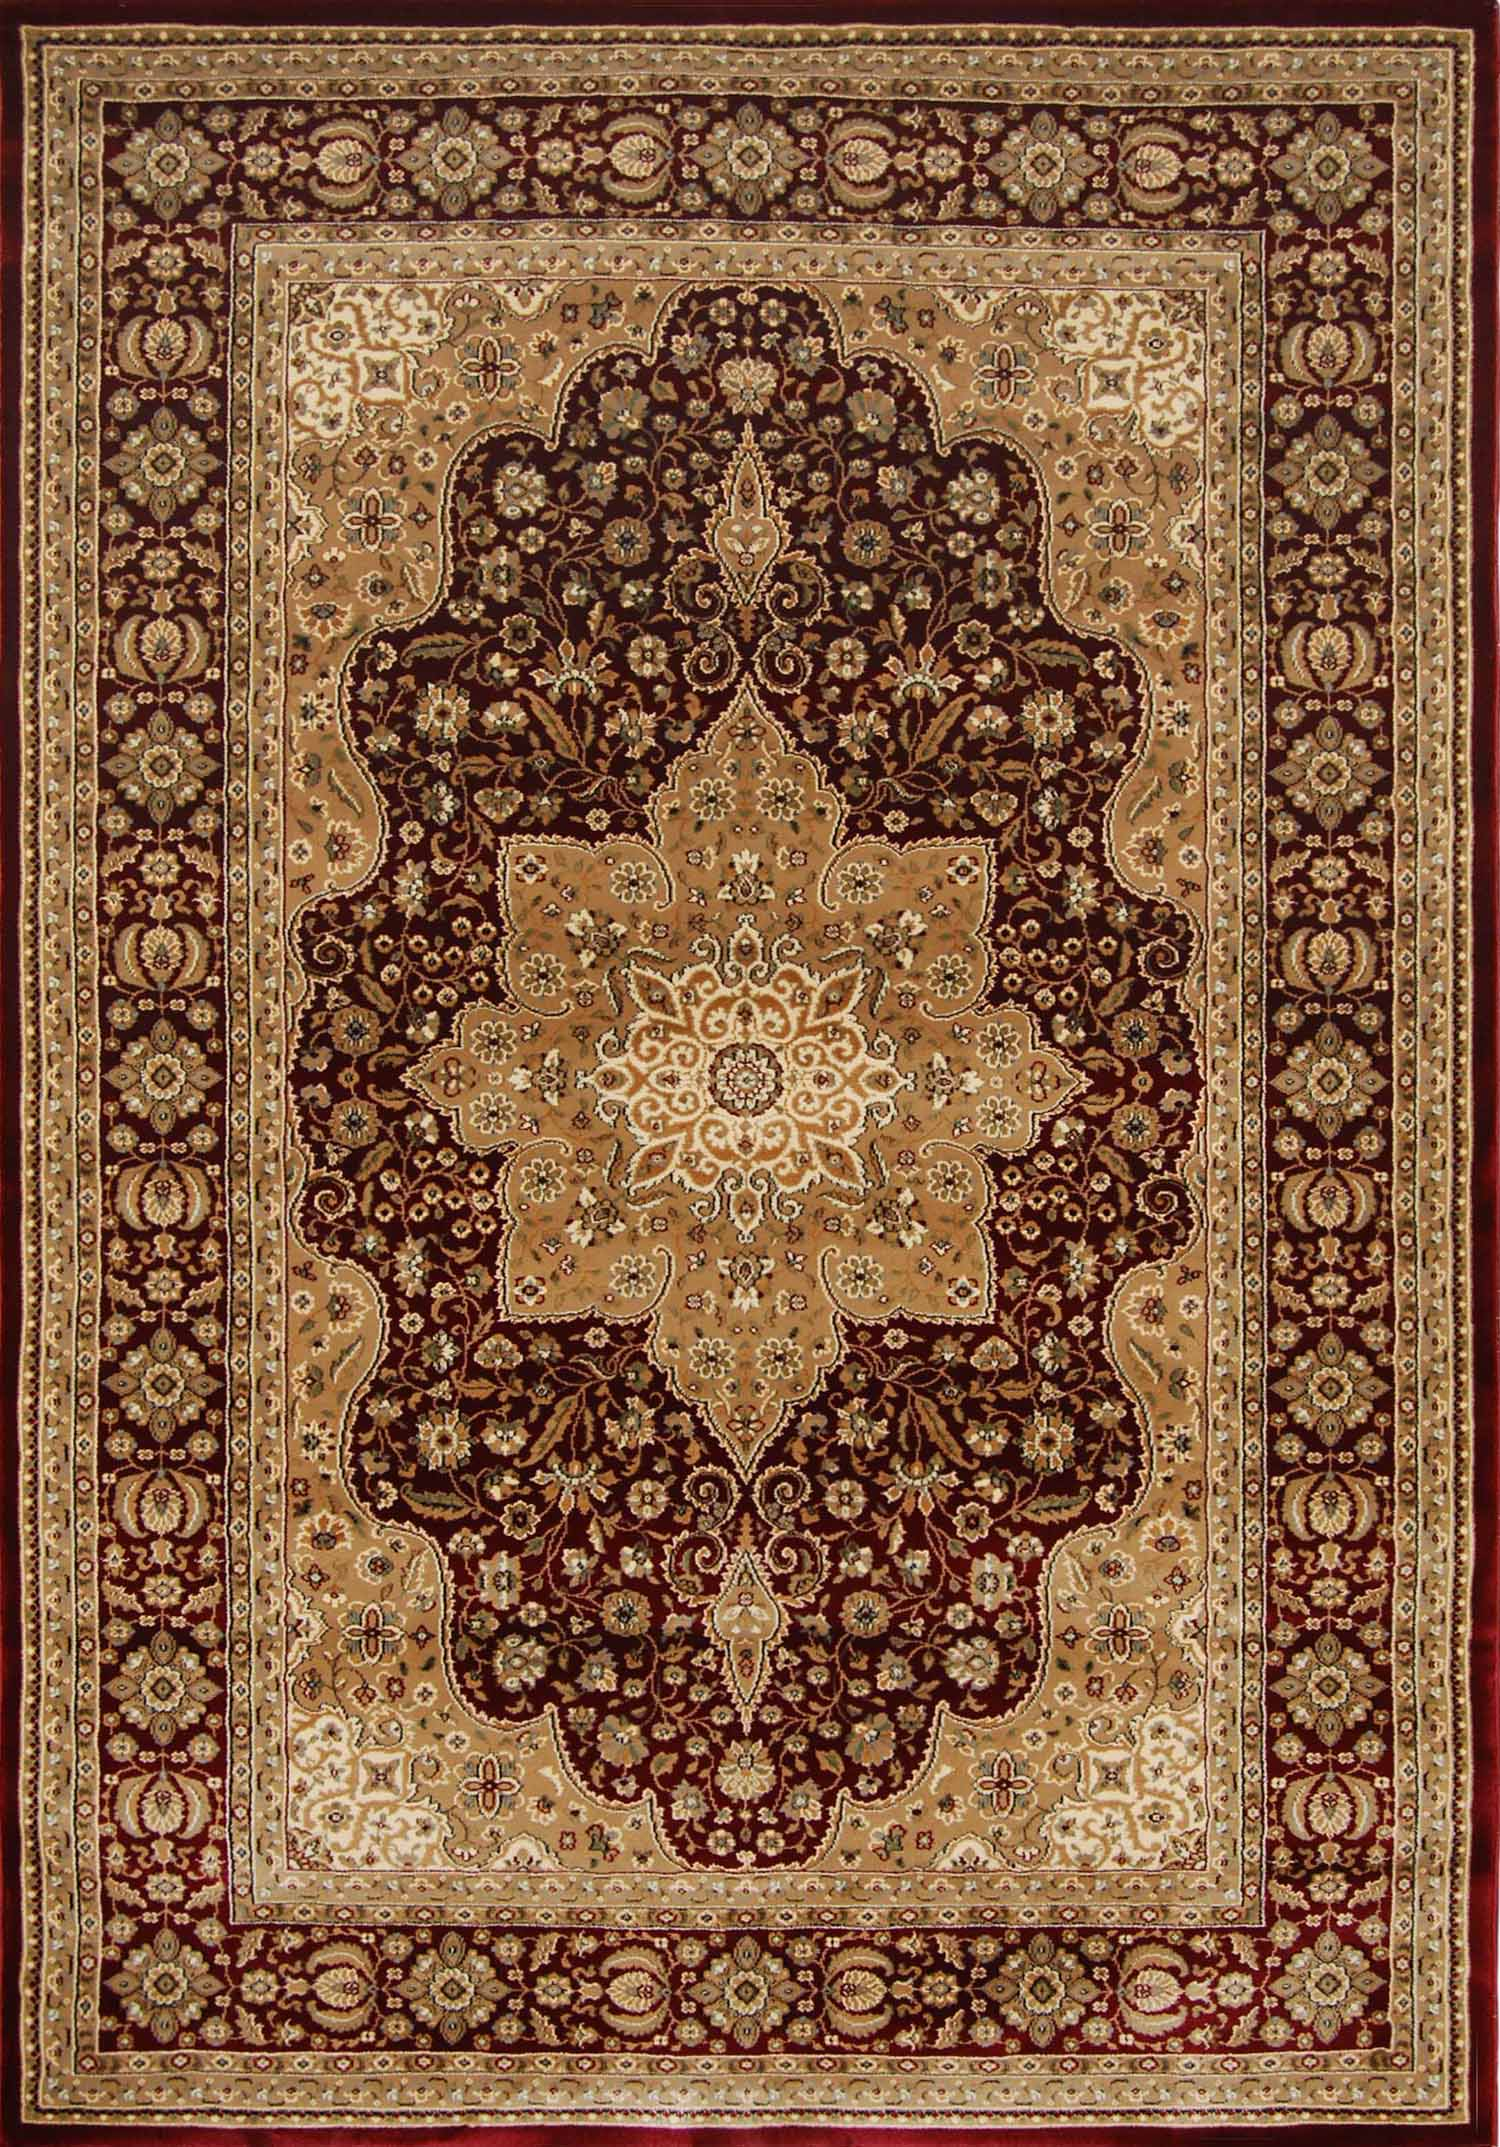 persian burgundy area rug 9x13 oriental carpet 1128b actual 9 39 2 x 12 39 5 ebay. Black Bedroom Furniture Sets. Home Design Ideas